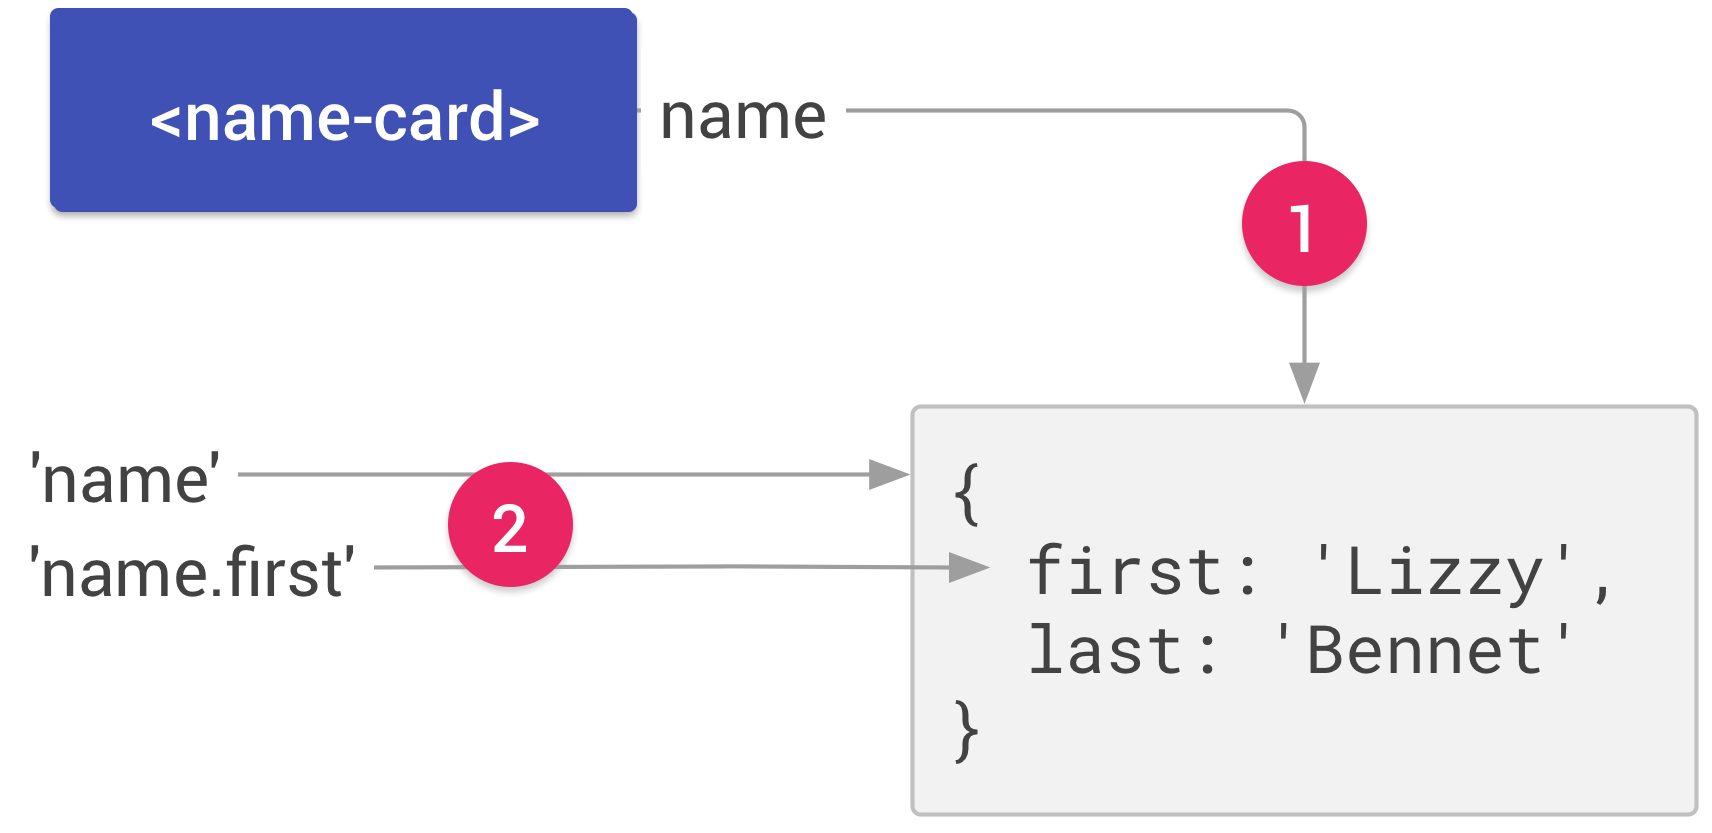 The name-card element from the previous figure. An arrow labeled 1 connects the name propertyto a JavaScript object that contains two properties, first: 'Lizzy' and last: 'Bennet'. Two arrowslabeled 2 connect the paths name and name.first with the object itself and the subproperty,first, respectively.